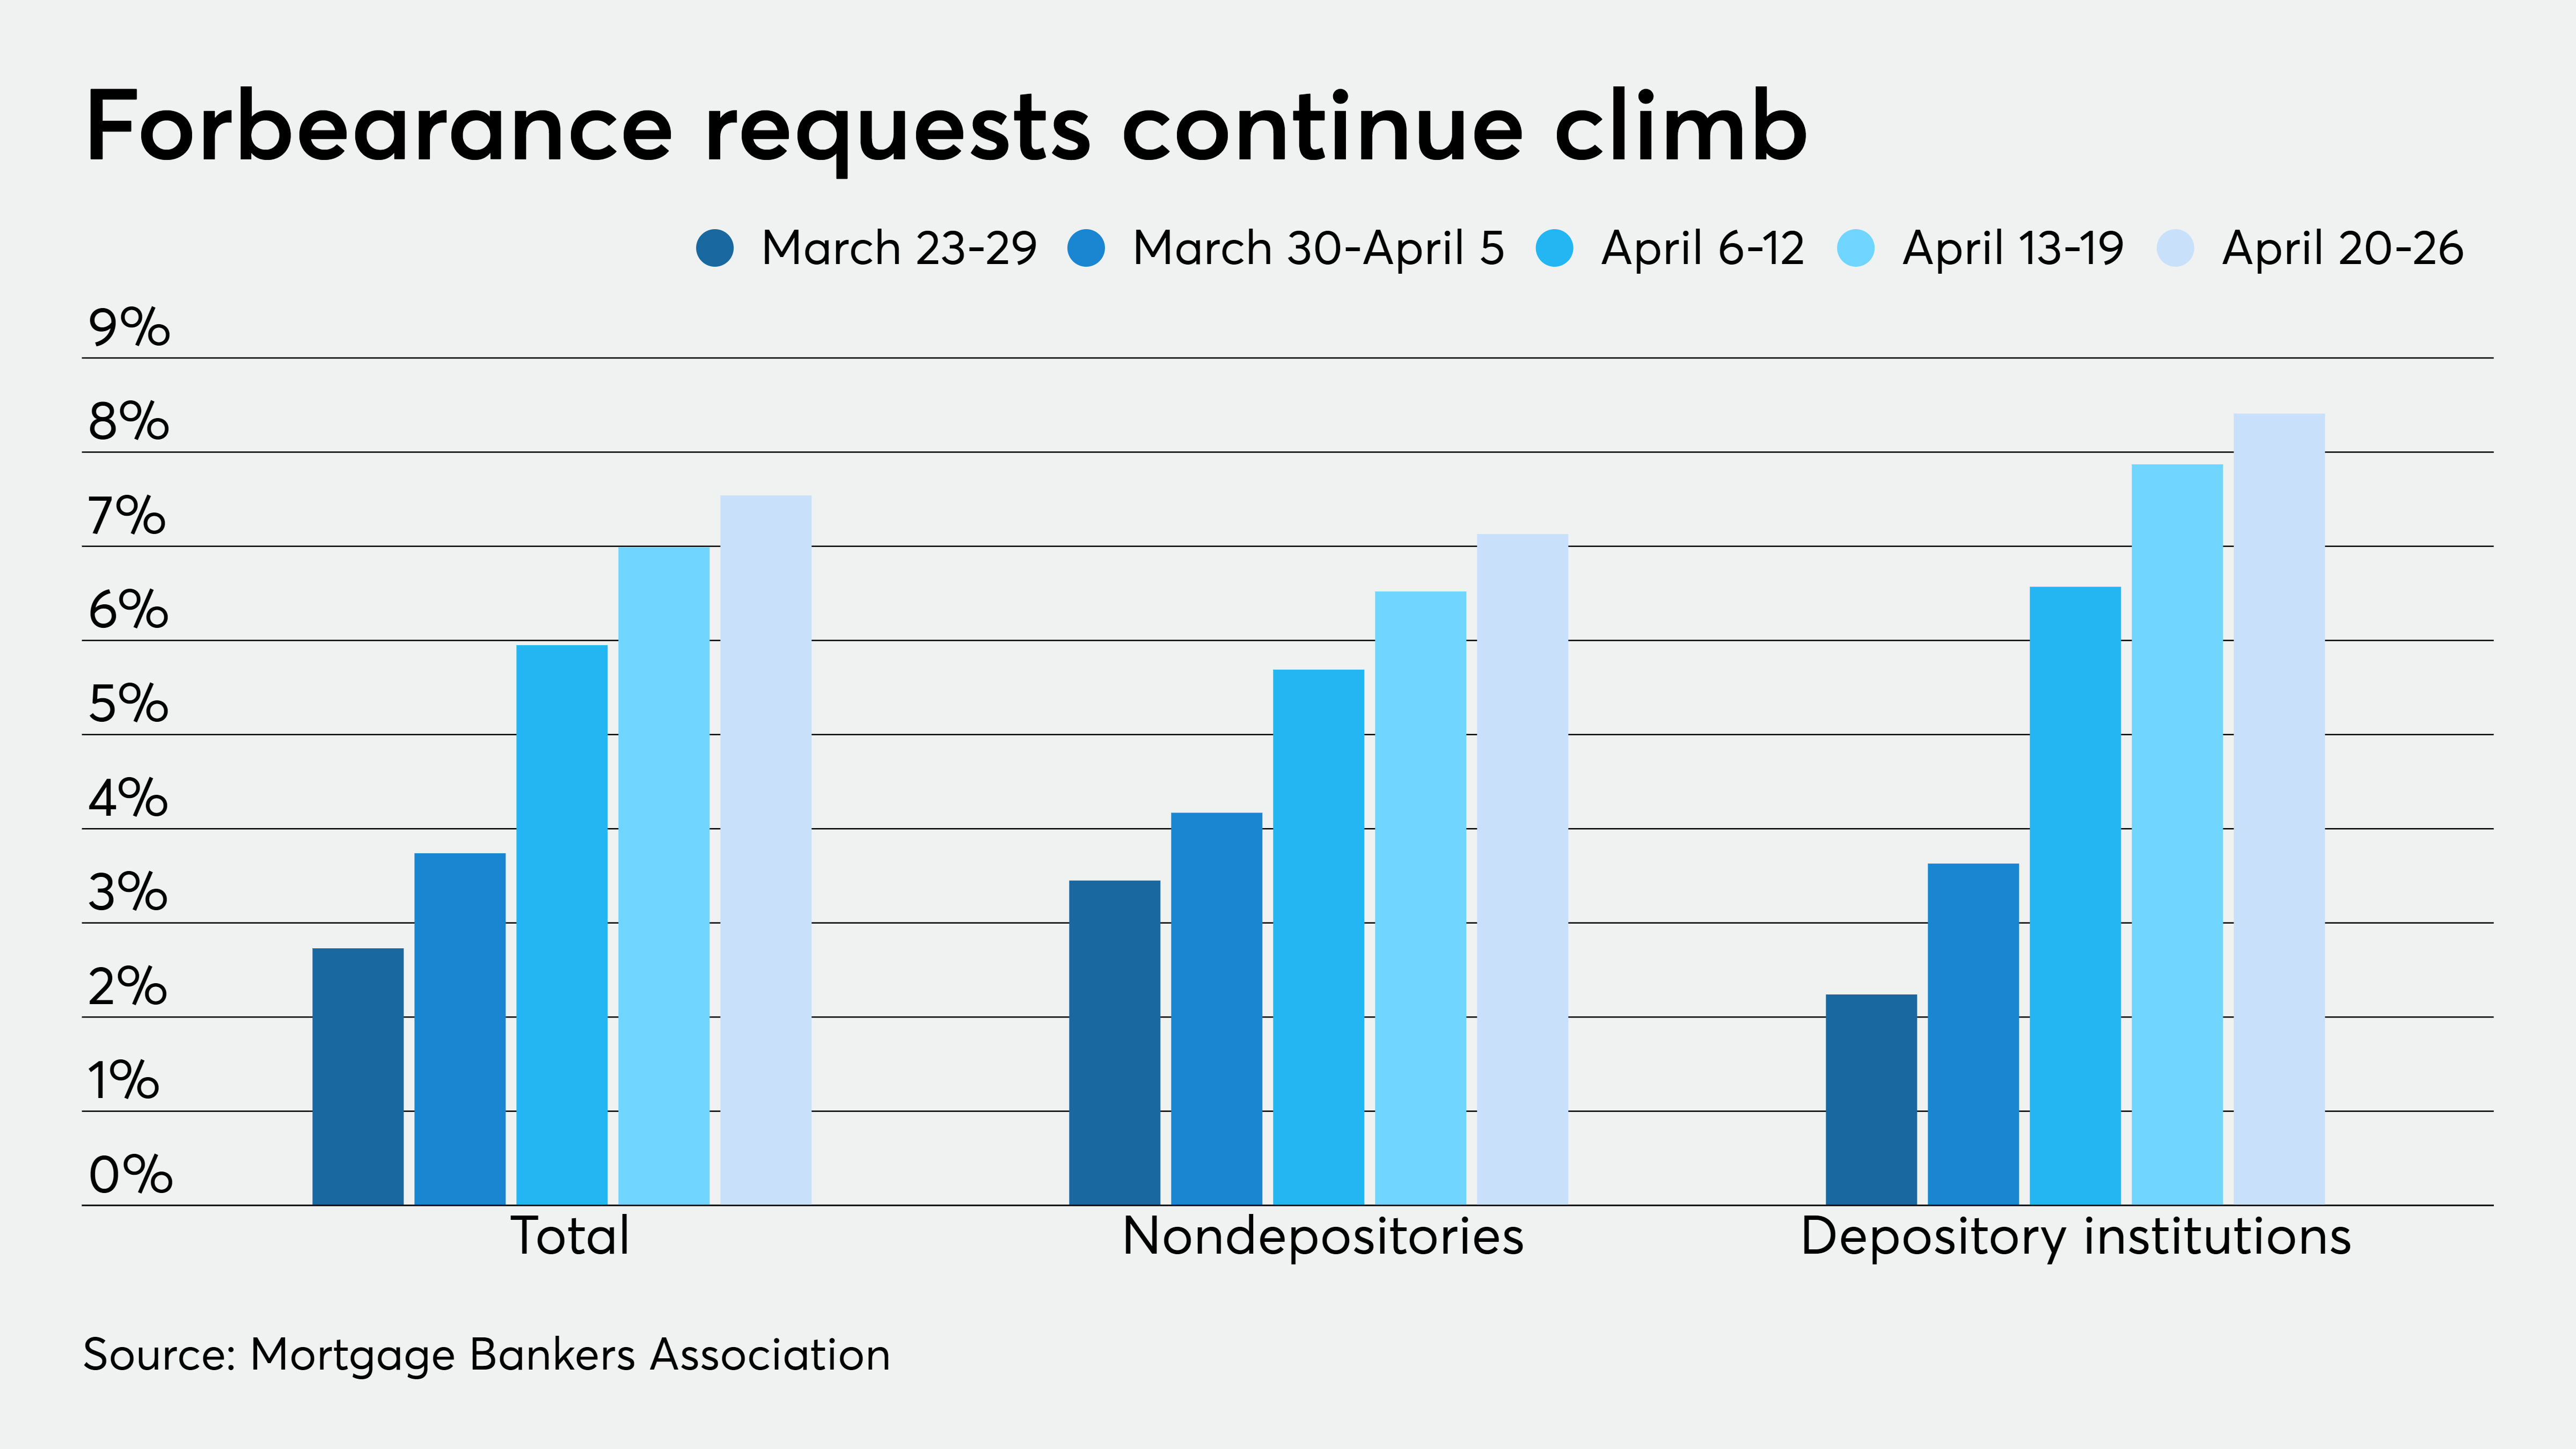 Distressed job market pushes mortgage forbearance requests higher